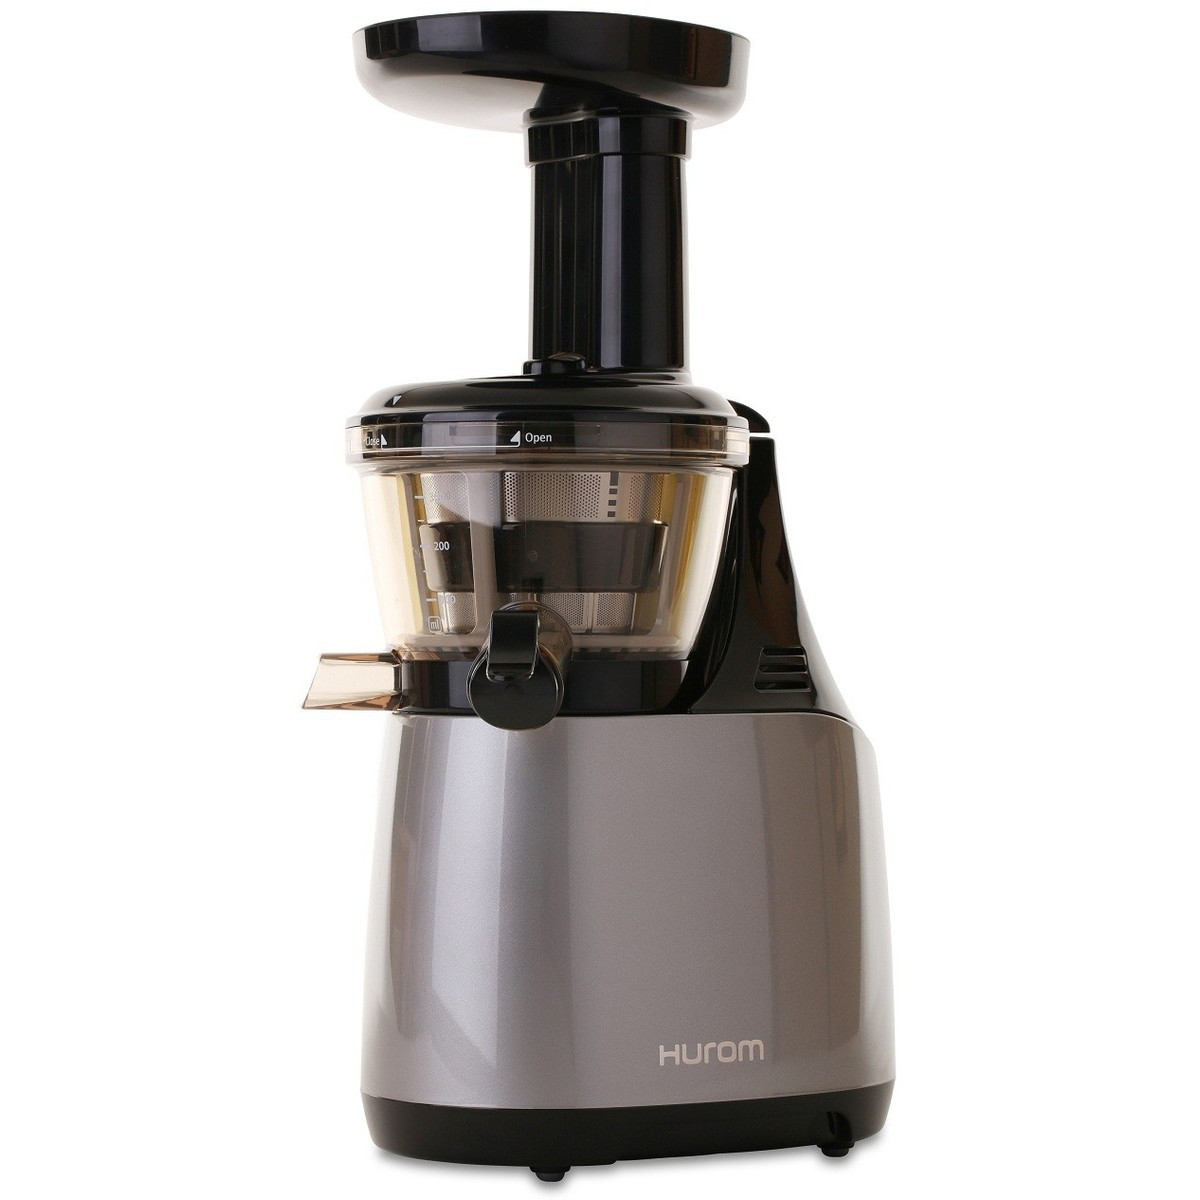 Slow Juicer Images : Hurom Slow Juicer HU-500 HE Series - Juicers.ie Ireland s ...